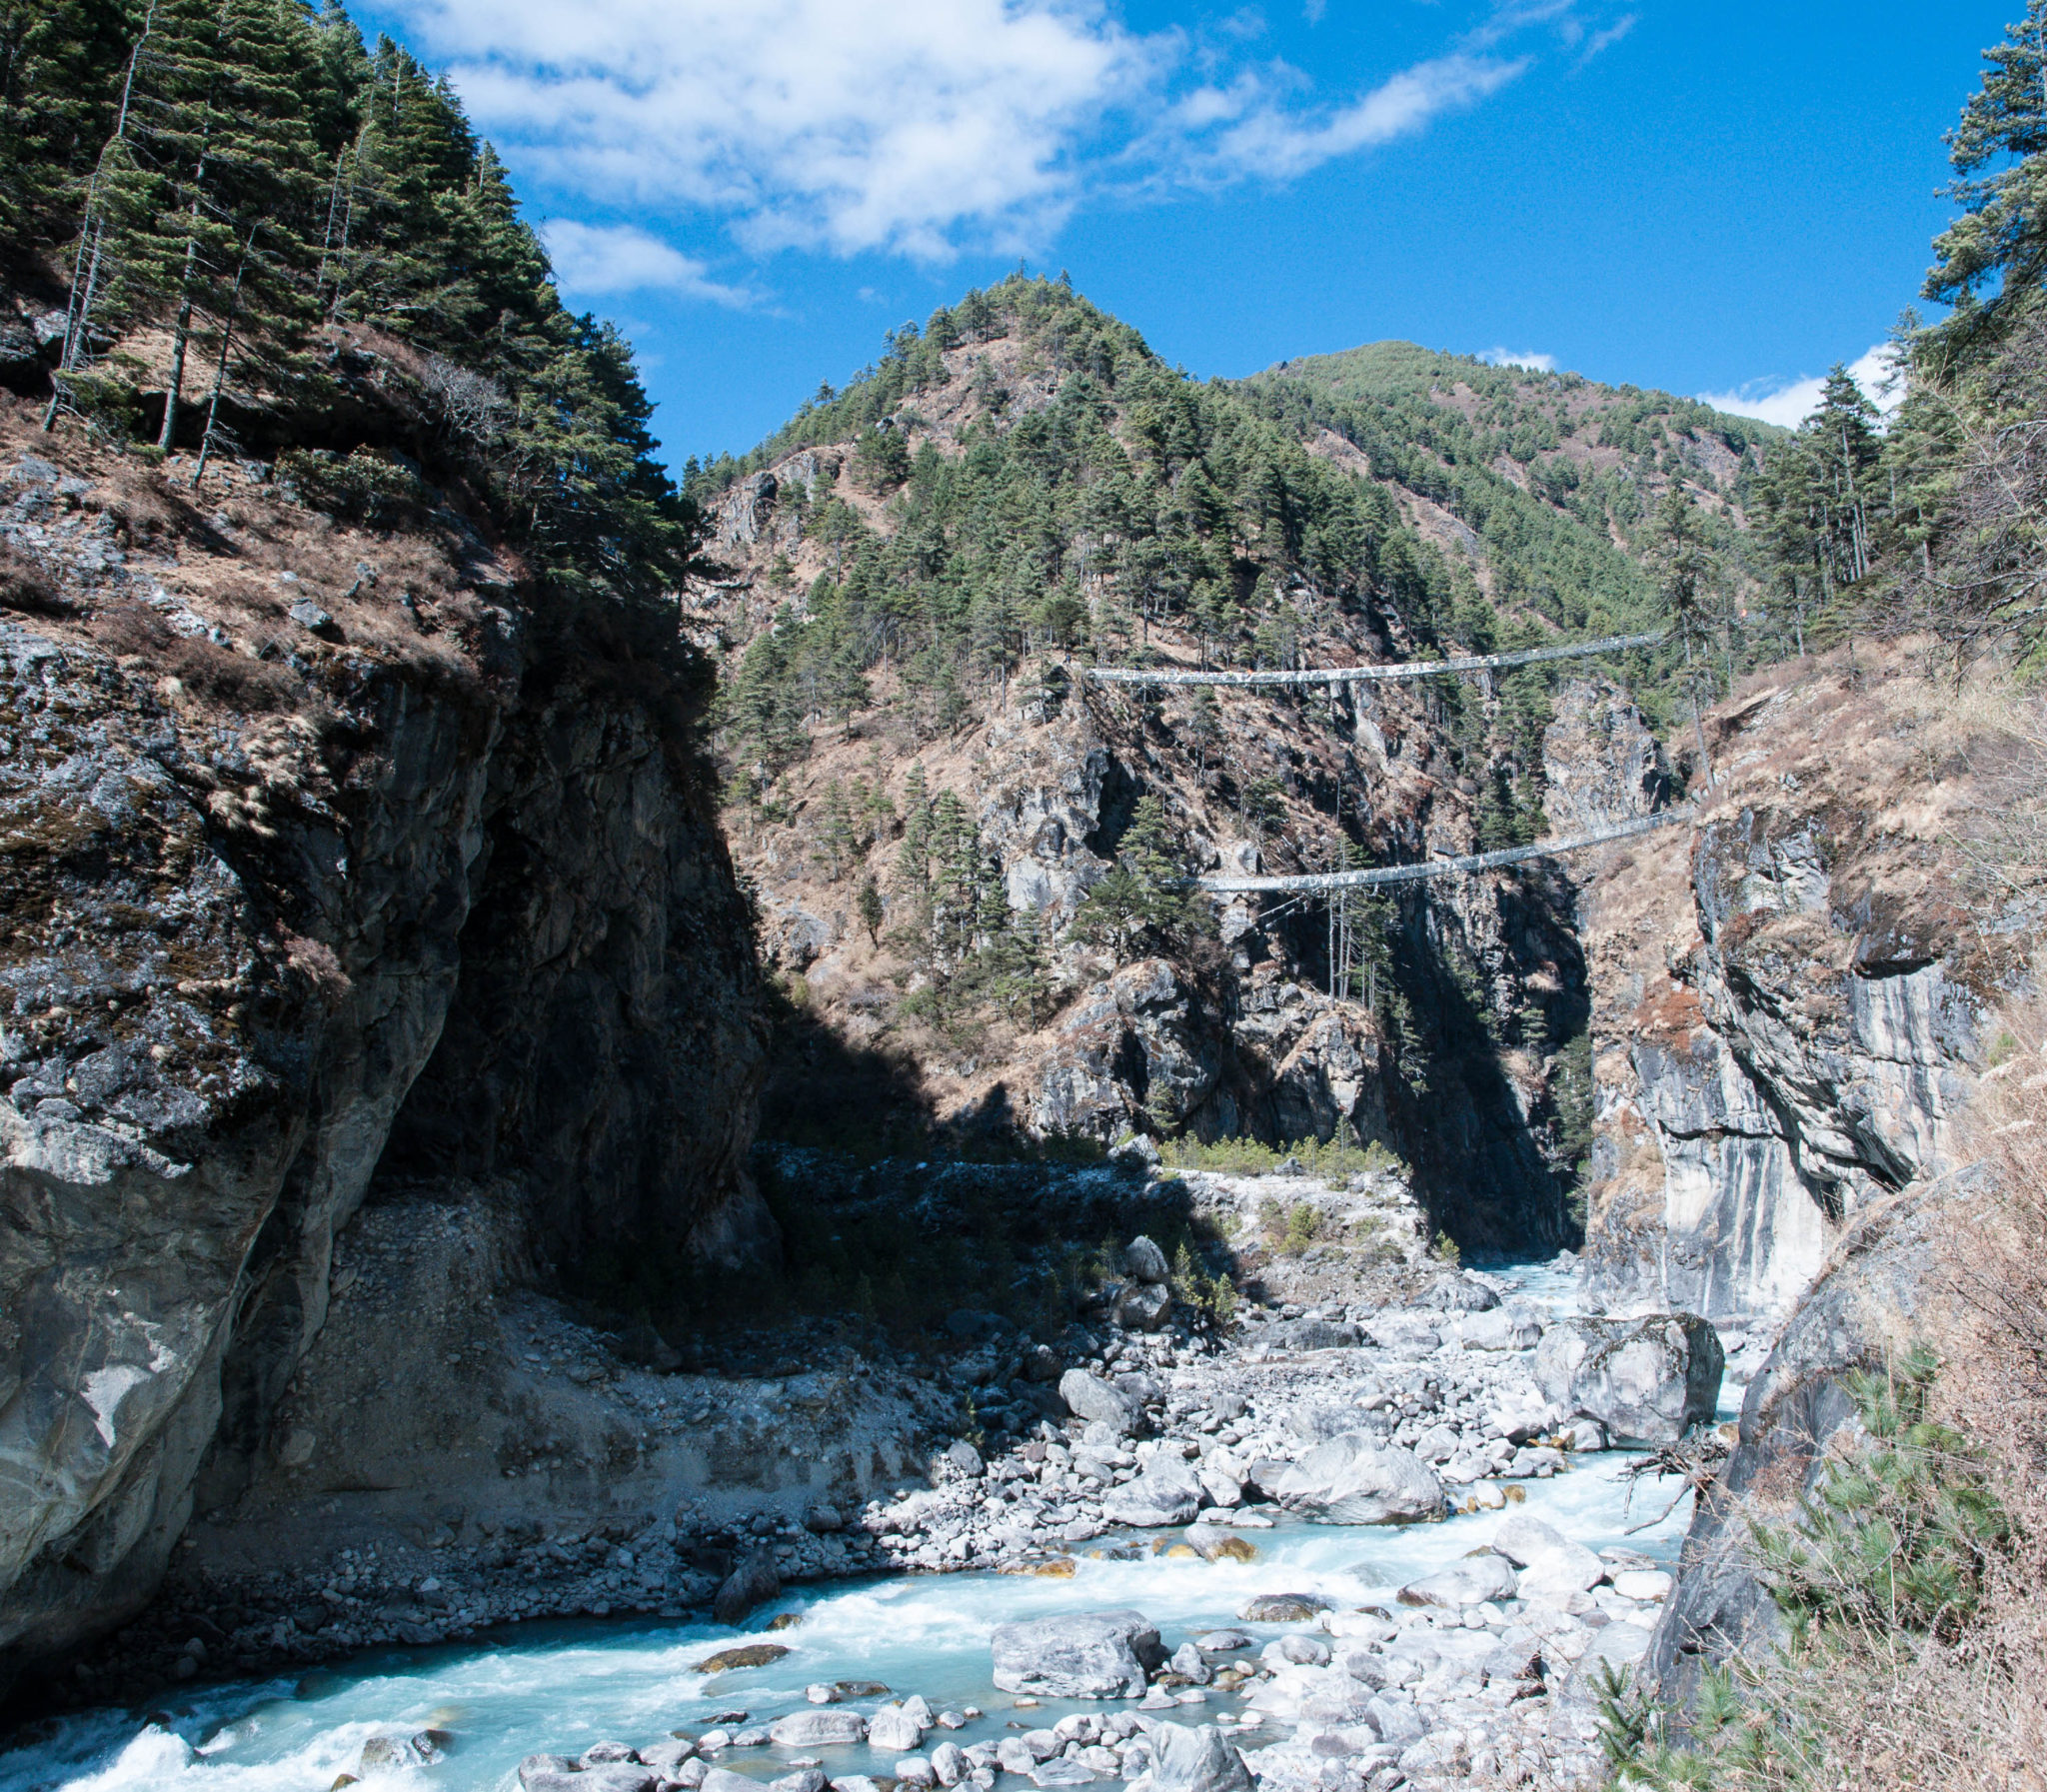 Final suspension bridge to reach the big hill to climb on to Namche